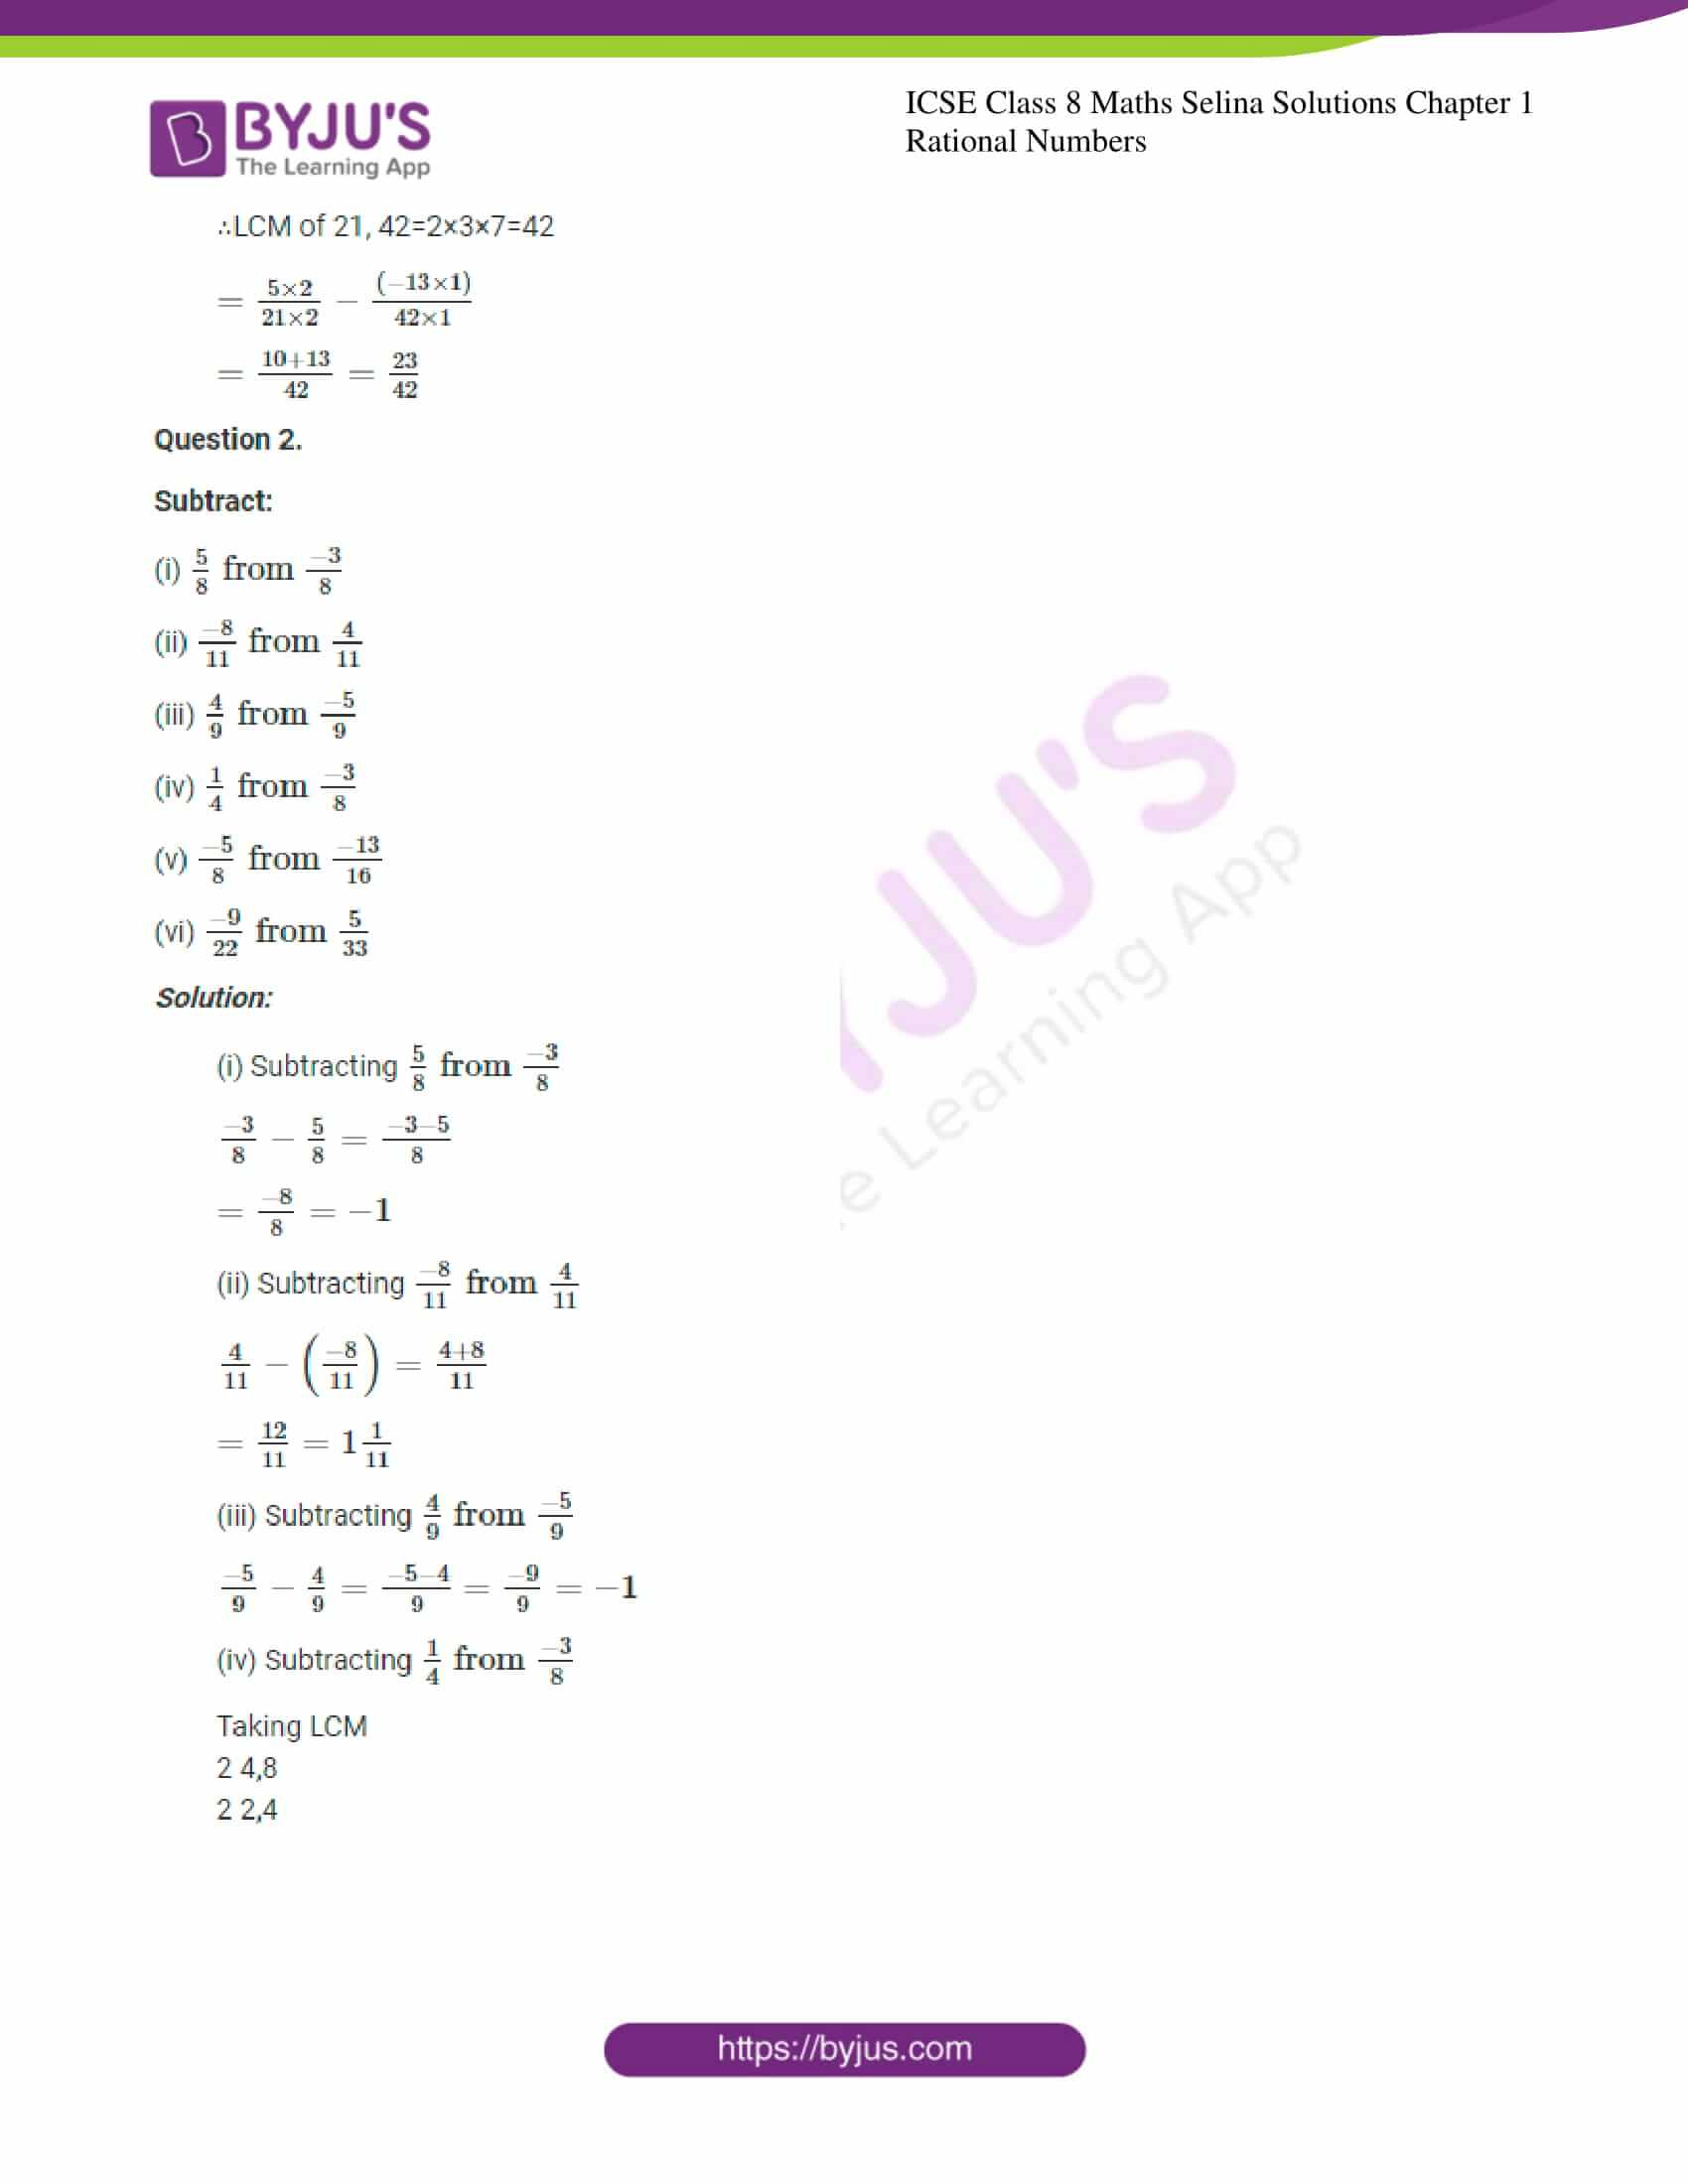 icse april7 class 8 maths selina solutions chapter 1 rational numbers 20